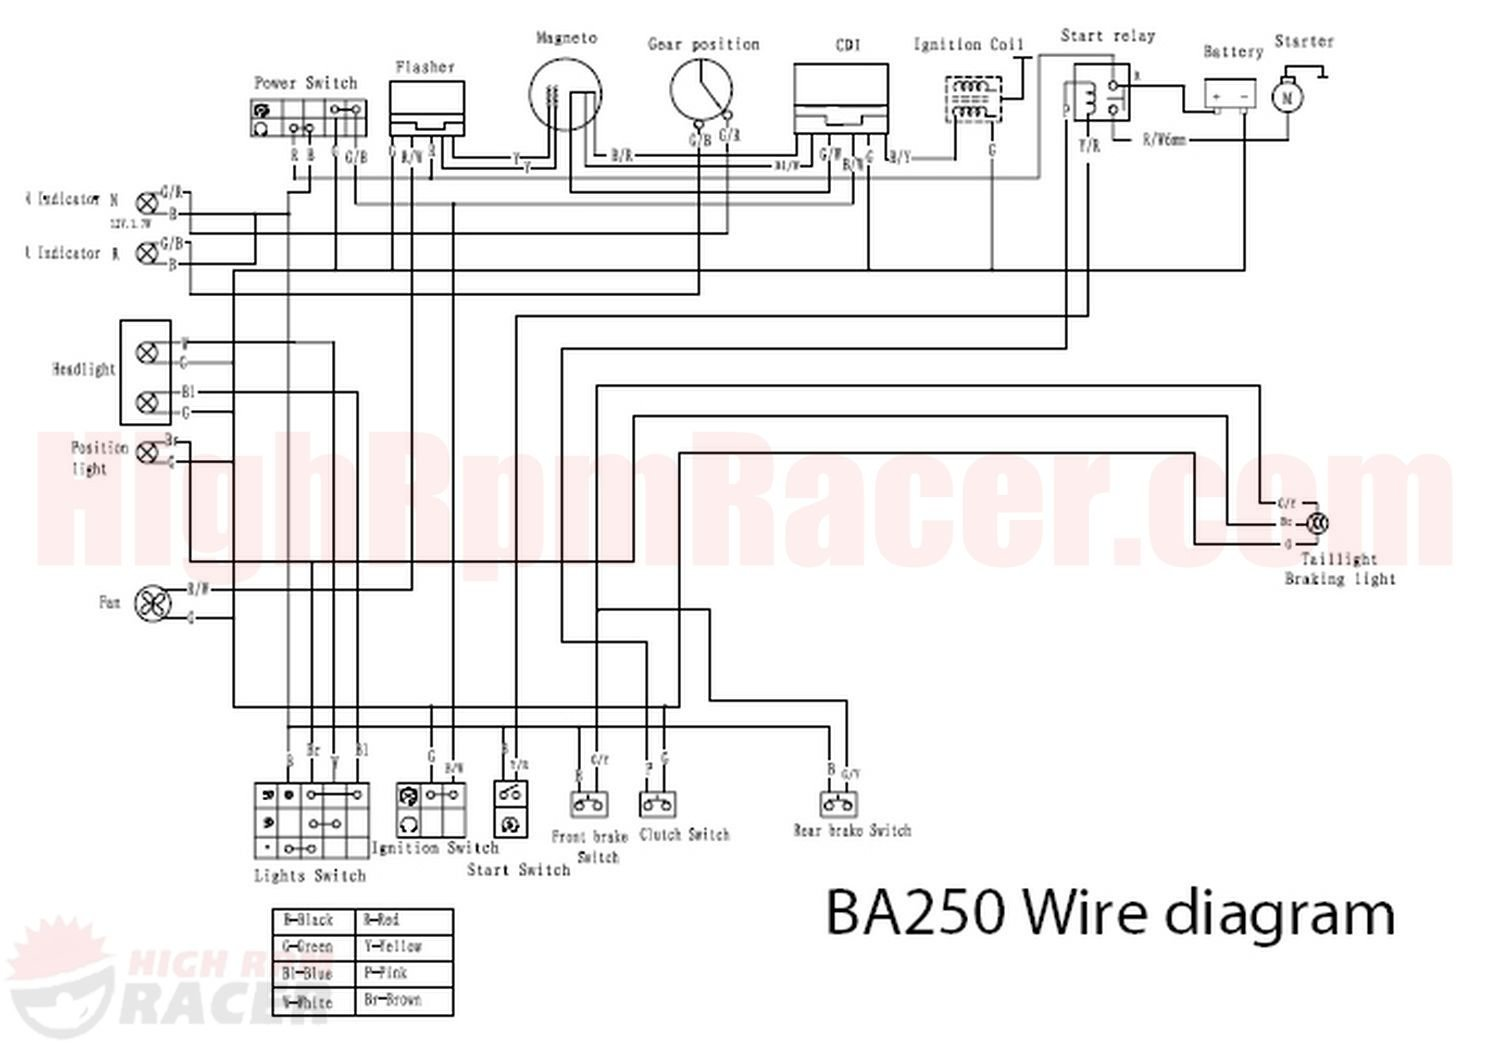 250 chinese atv wiring diagram as well baja motorsports 150 atv as250 chinese atv wiring diagram as well baja motorsports 150 atv asbaja motorsports yg6 wiring harness